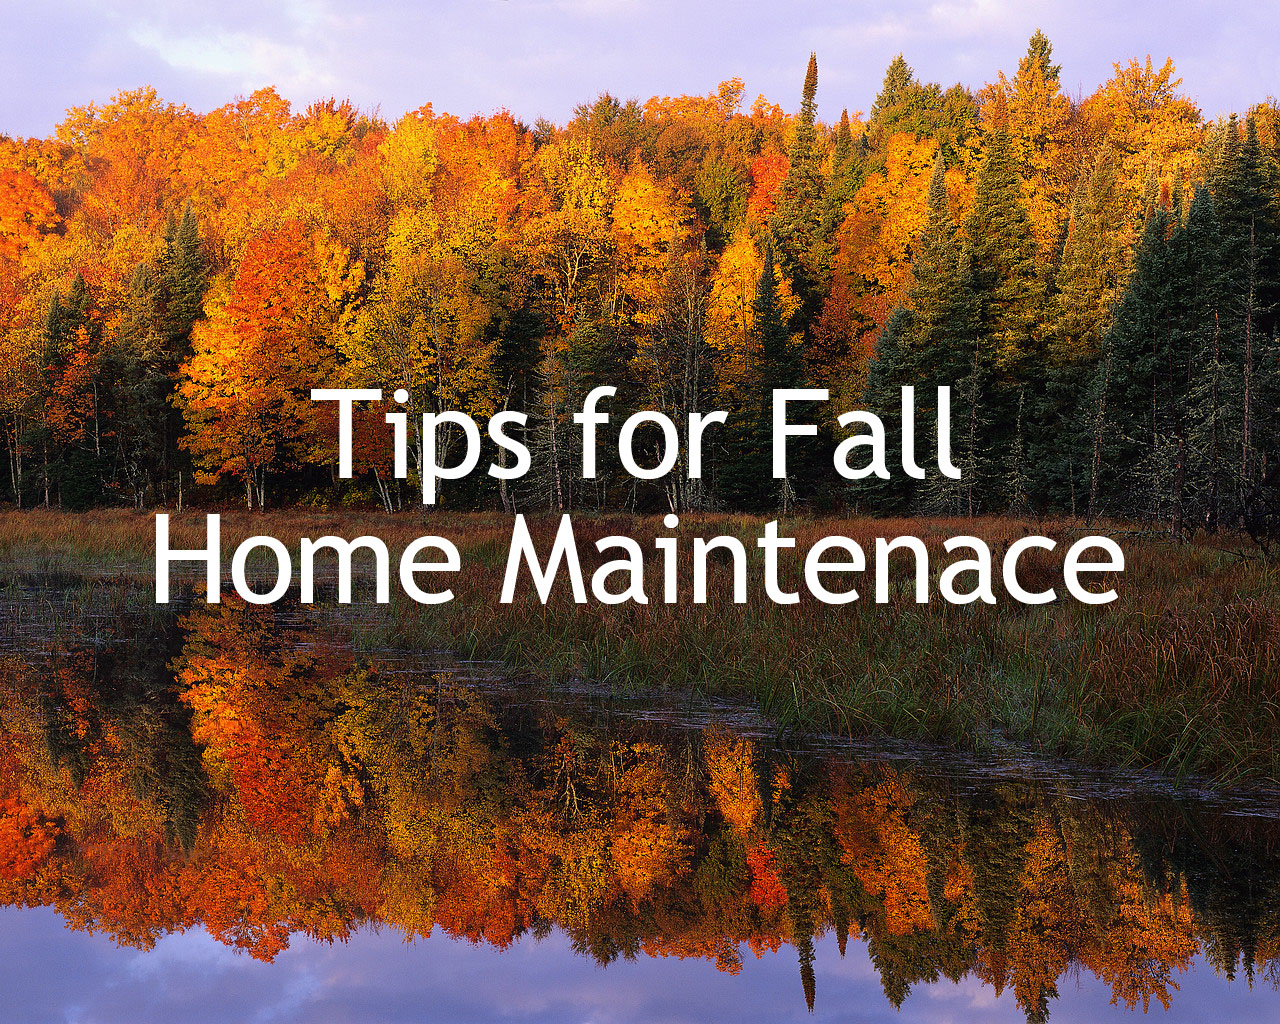 How to maintain your home during fall & winter